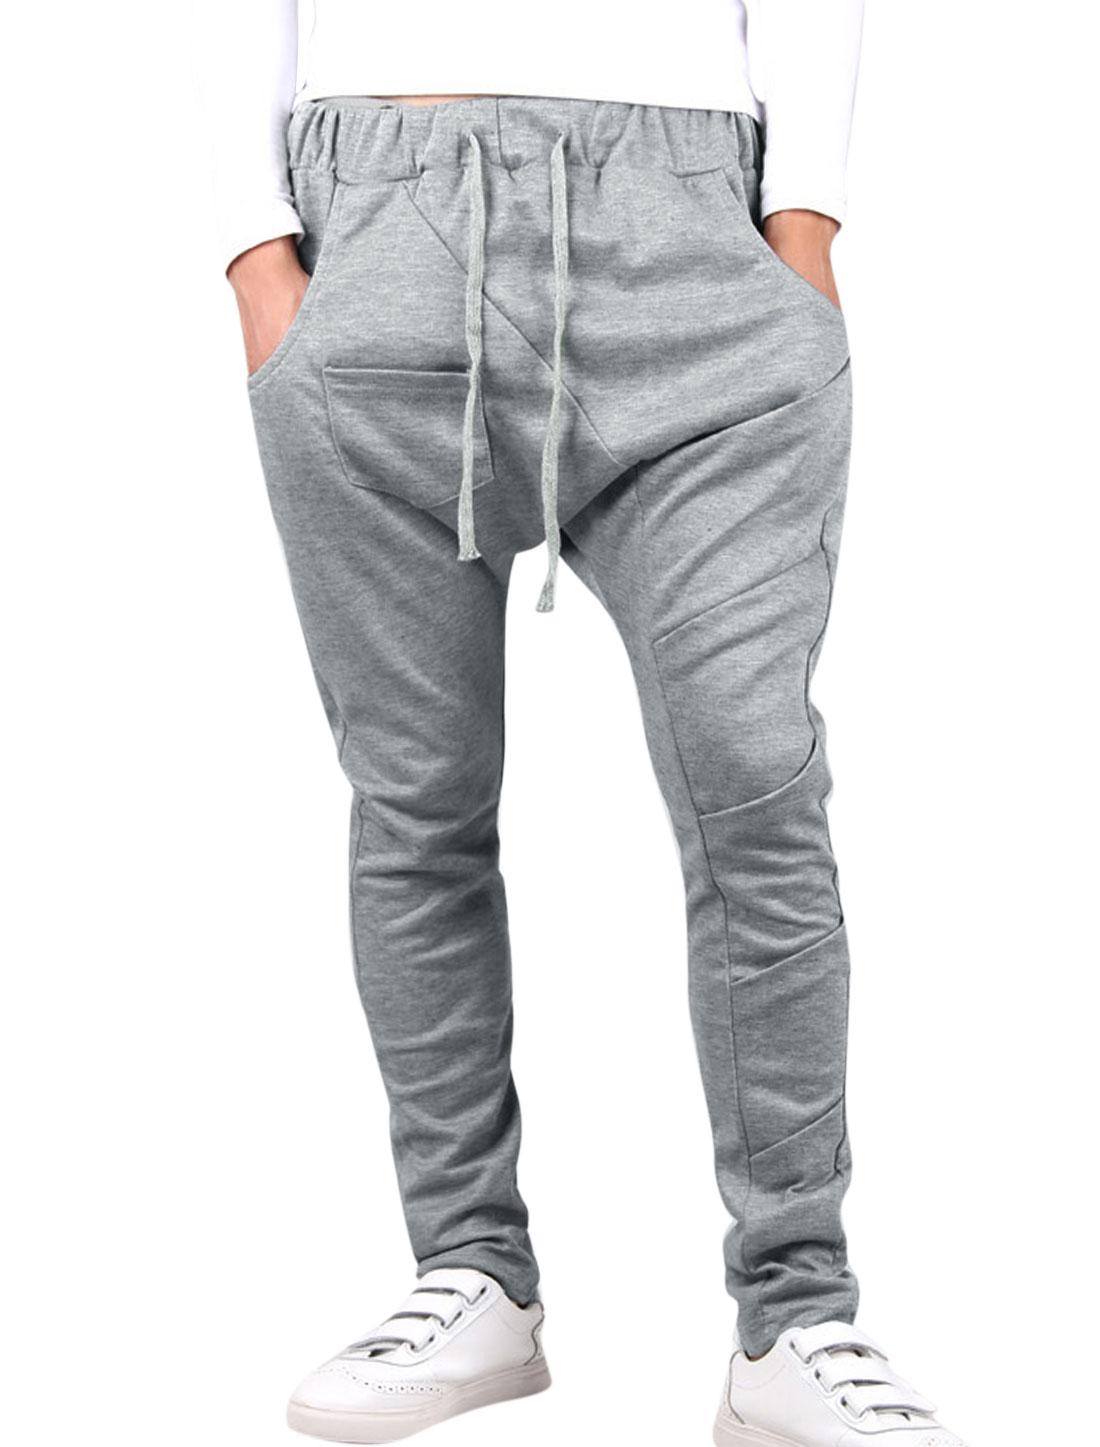 Men Elastic Waist Ruched Design Casual Long Pants Light Gray W30